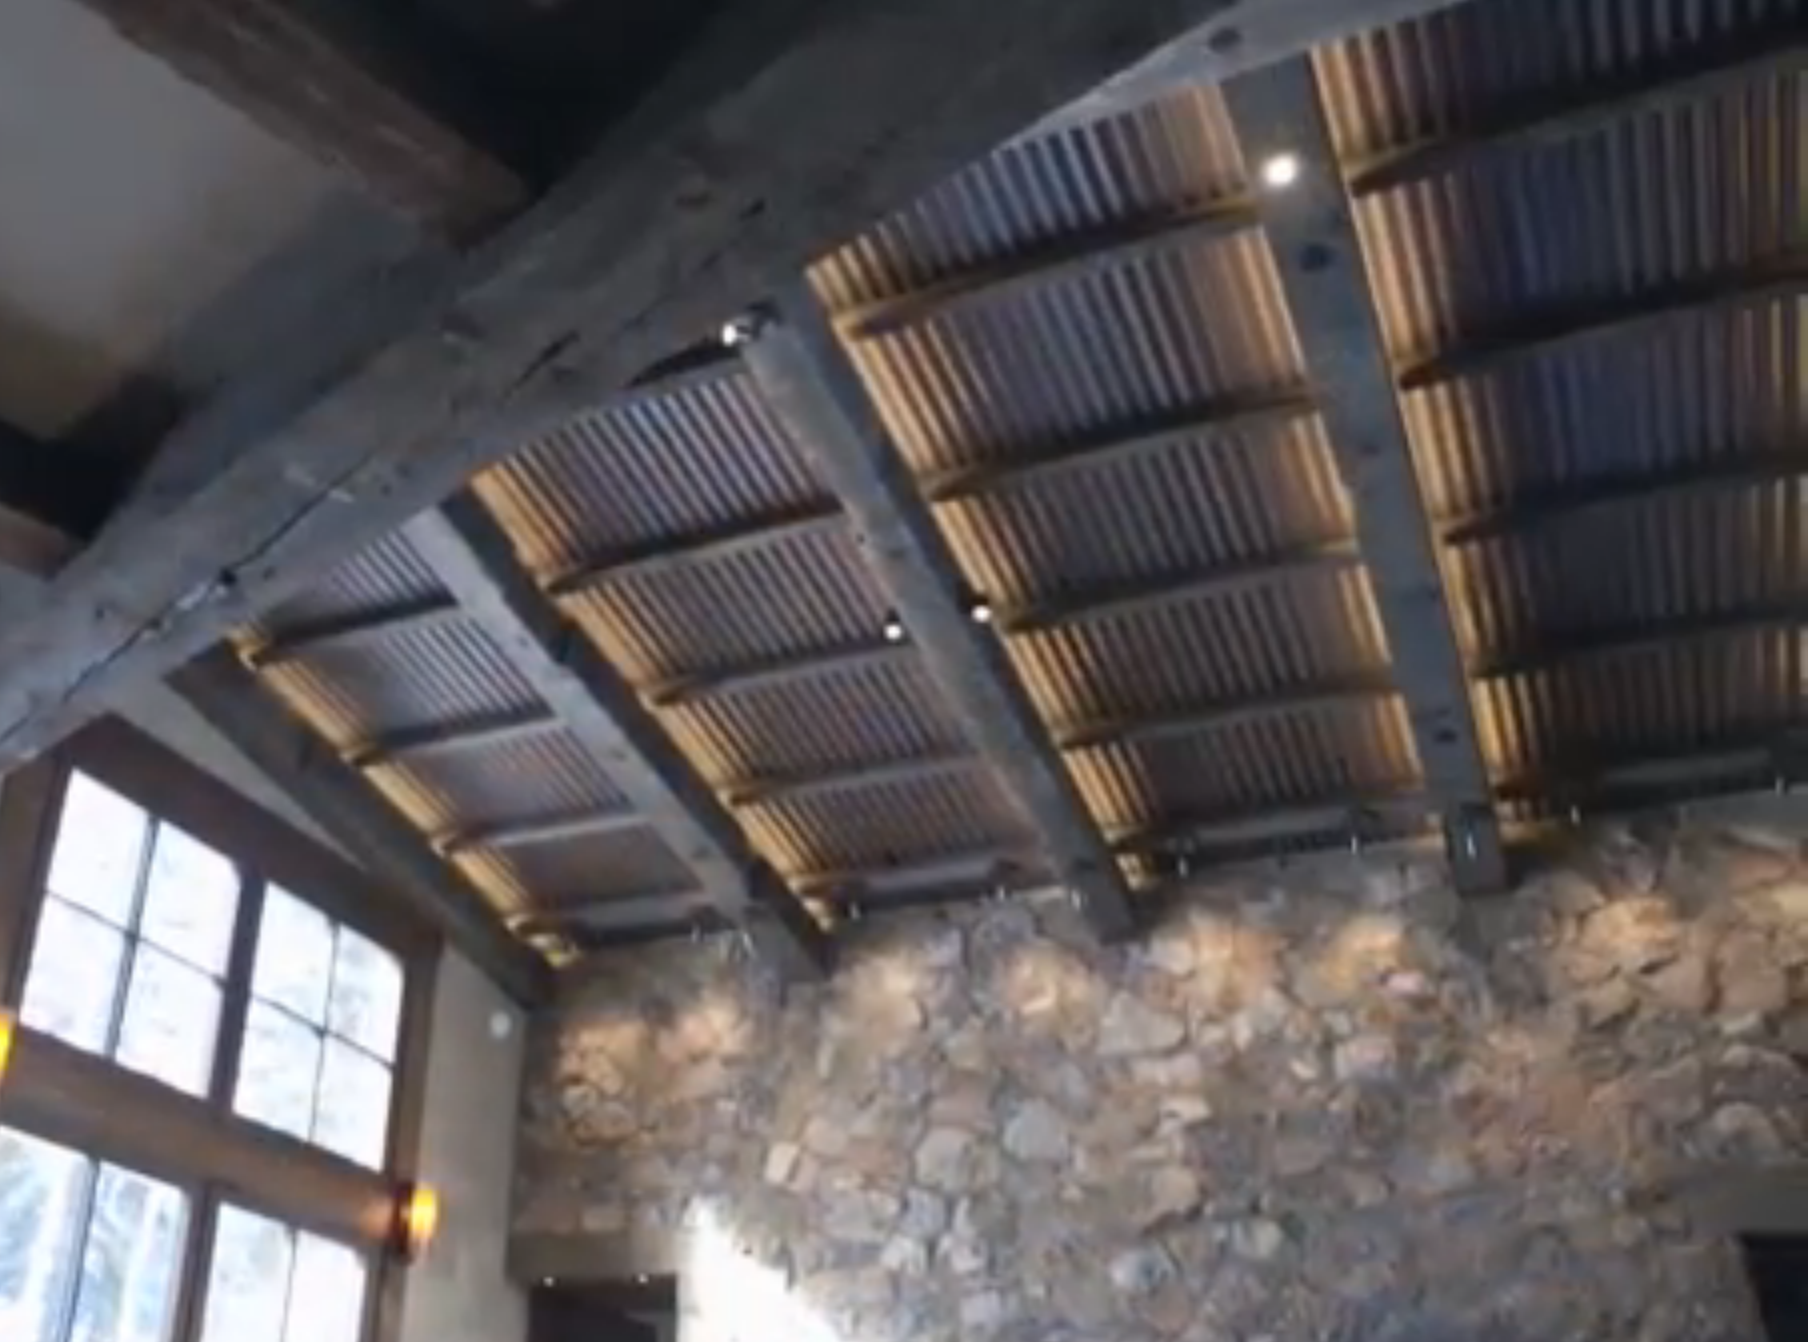 Charmant Corrugated Metal Ceiling, Wood Beams, Great Accent Lighting